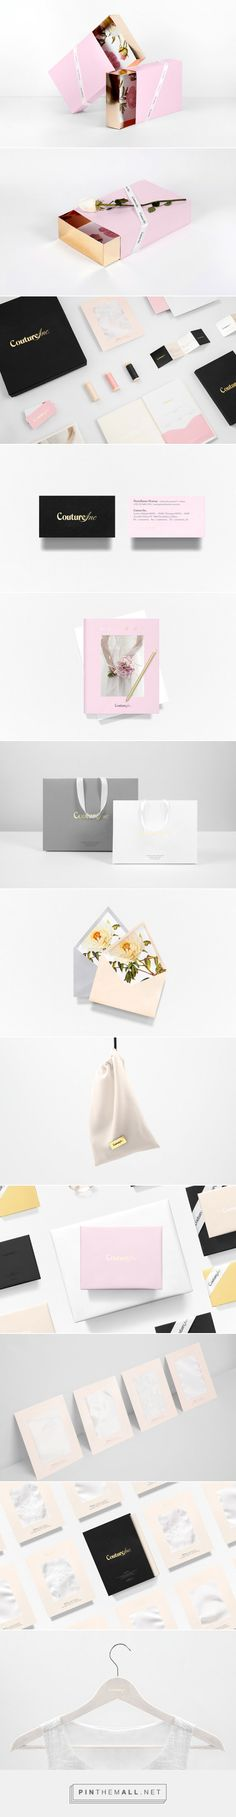 Couture Inc. #packaging by Anagrama - http://www.packagingoftheworld.com/2015/02/couture-inc.html